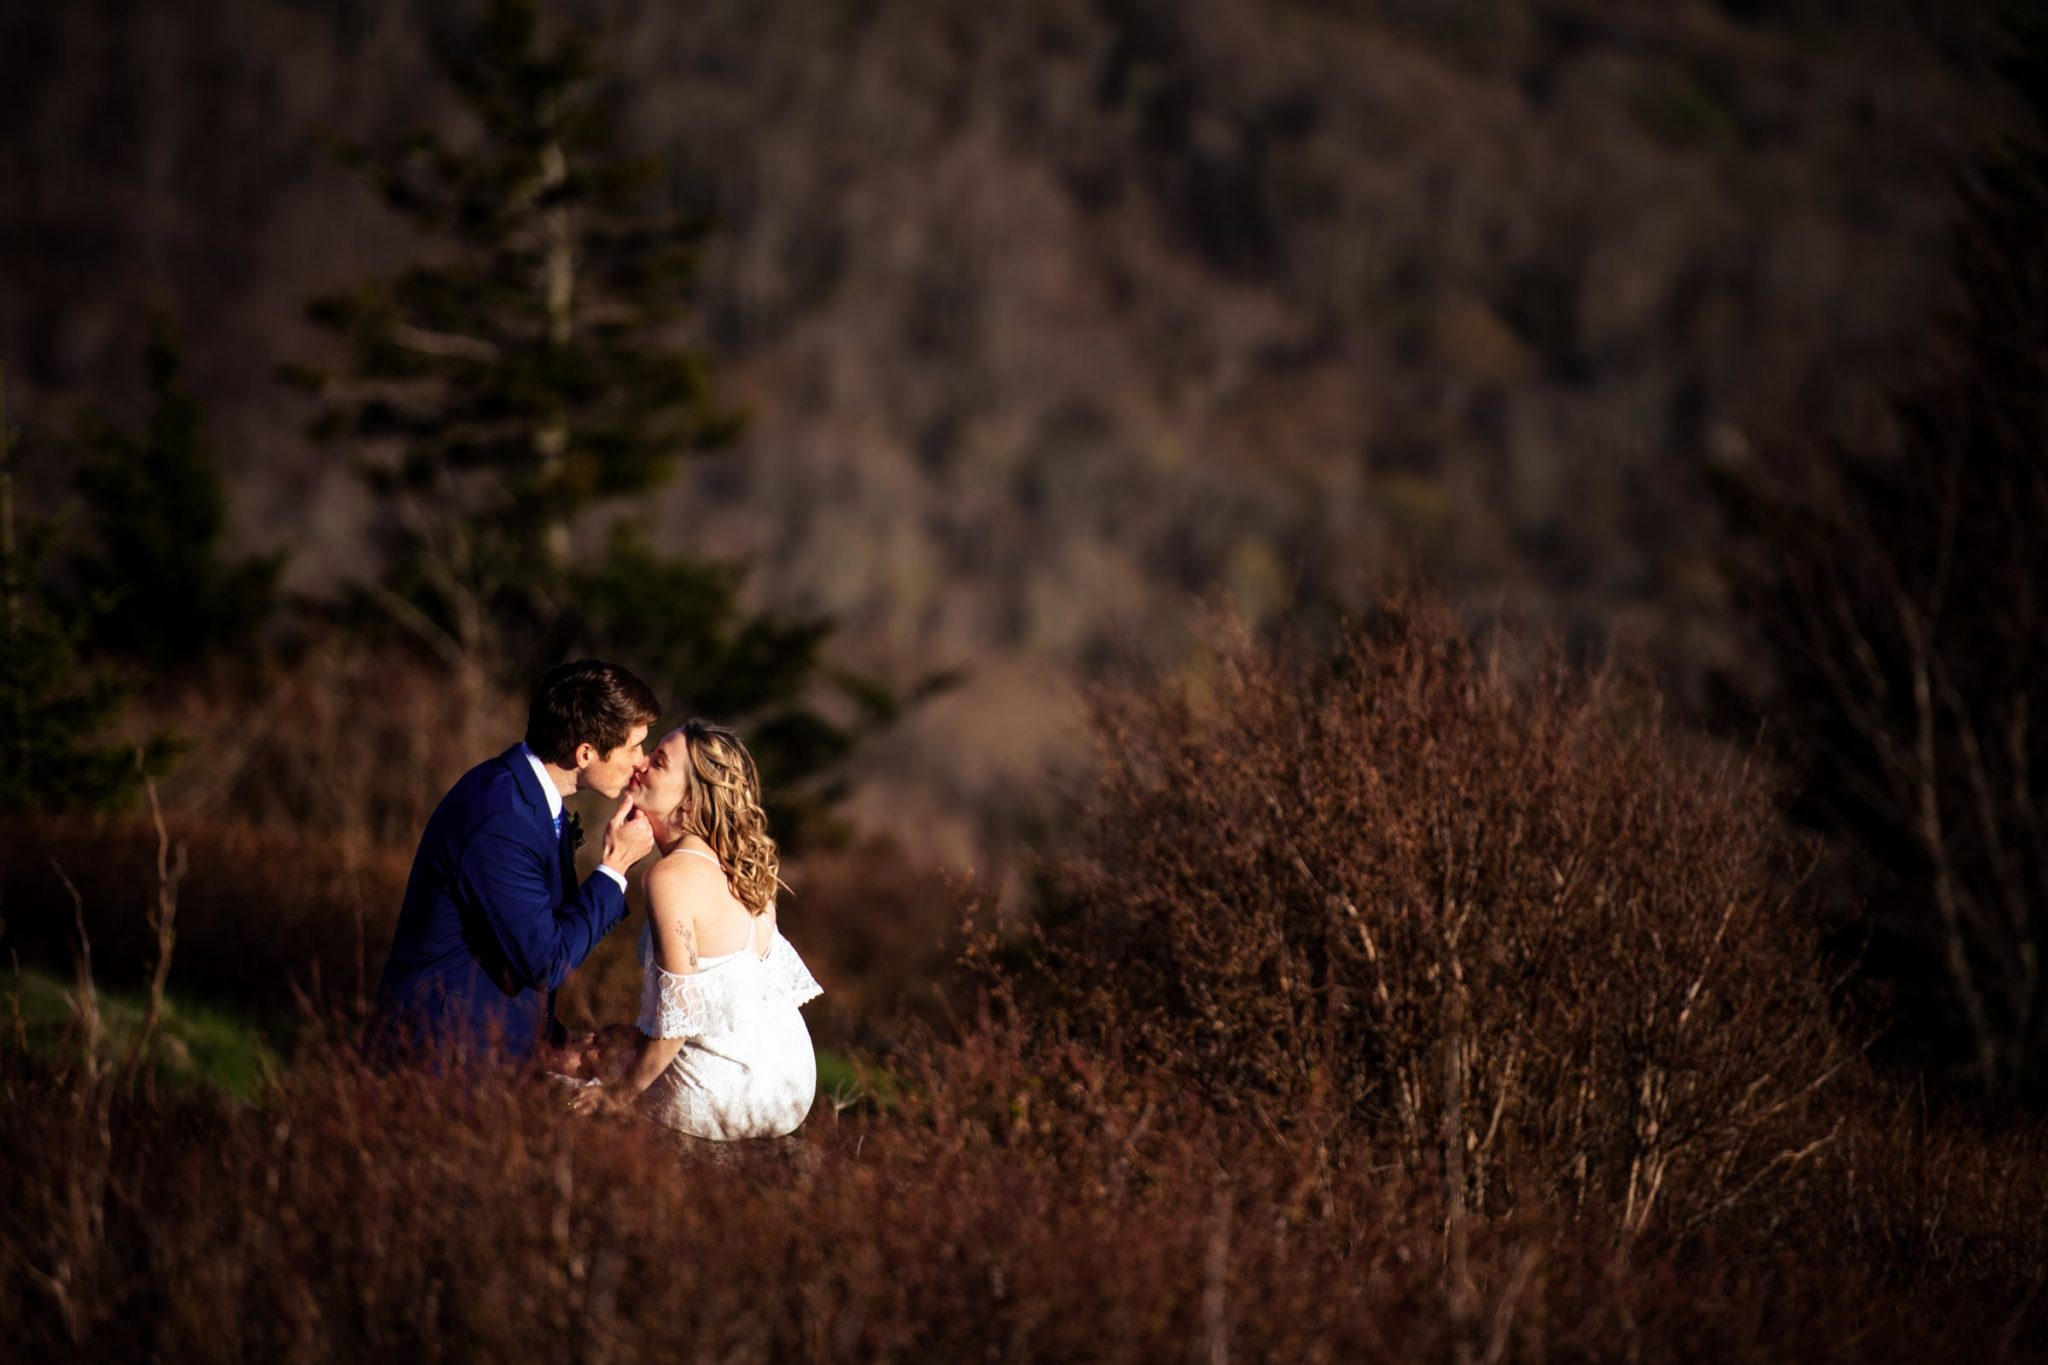 Husband and wife kissing after eloping in carvers gap